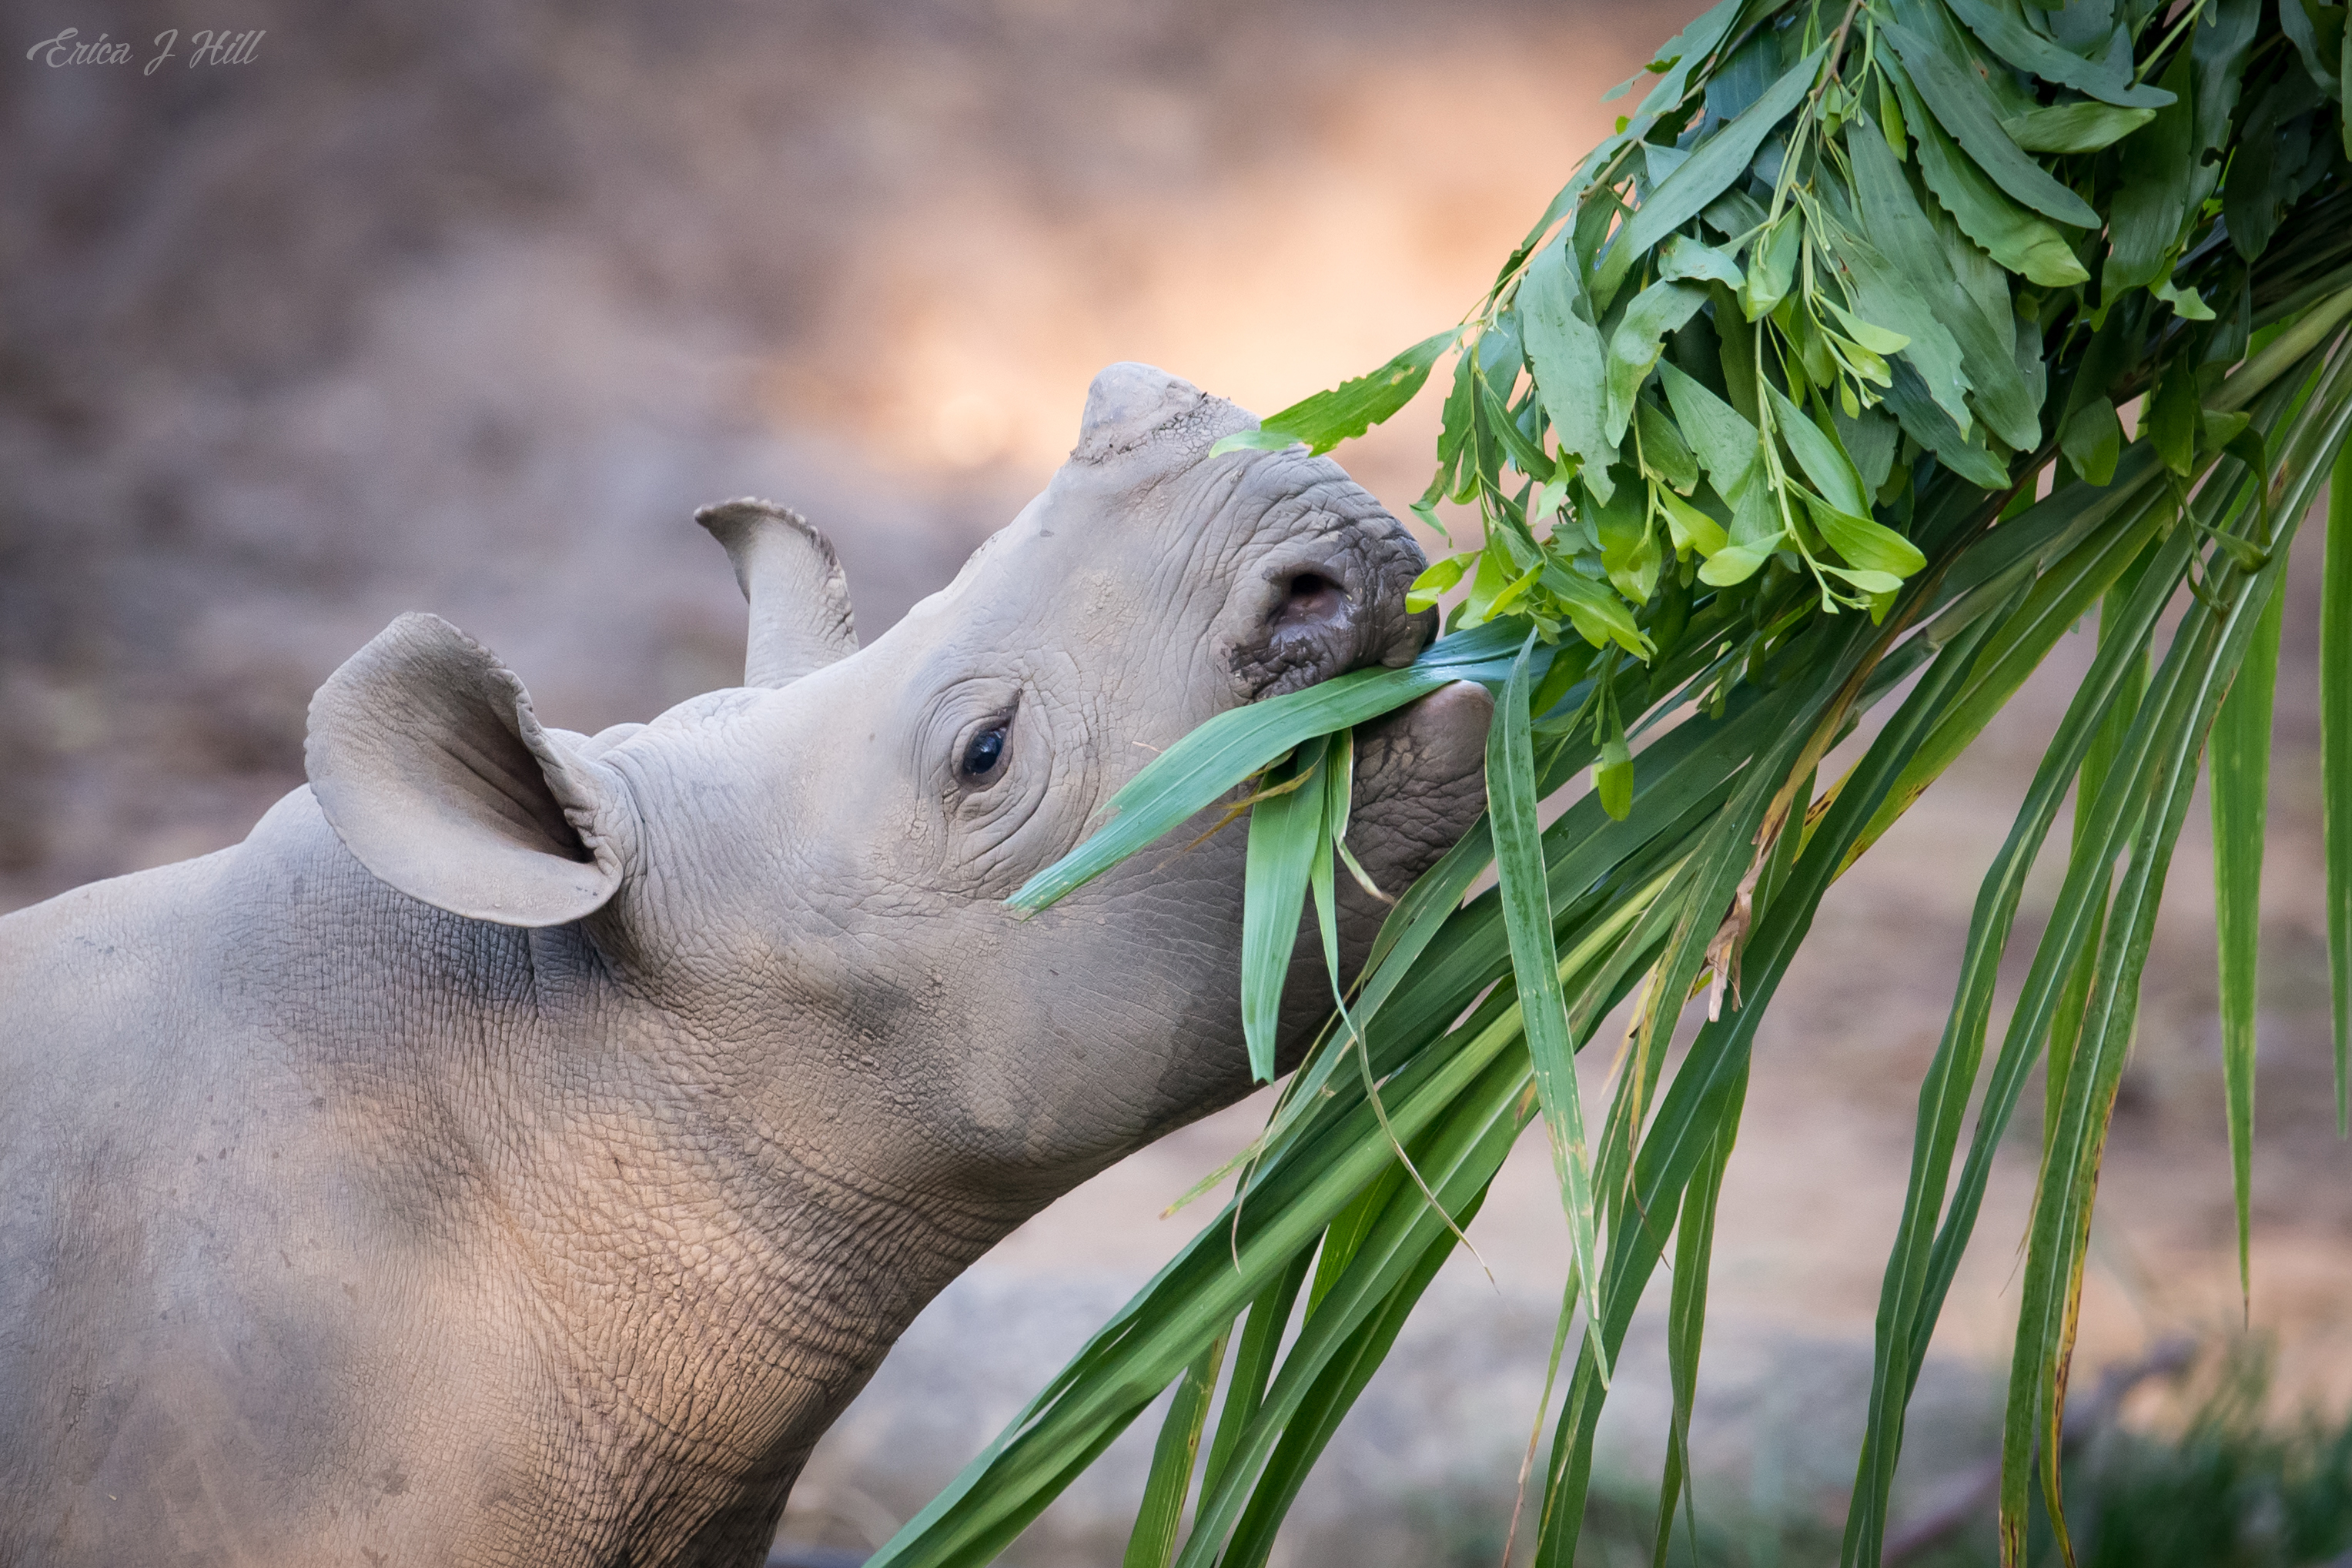 Black Rhino eating some food